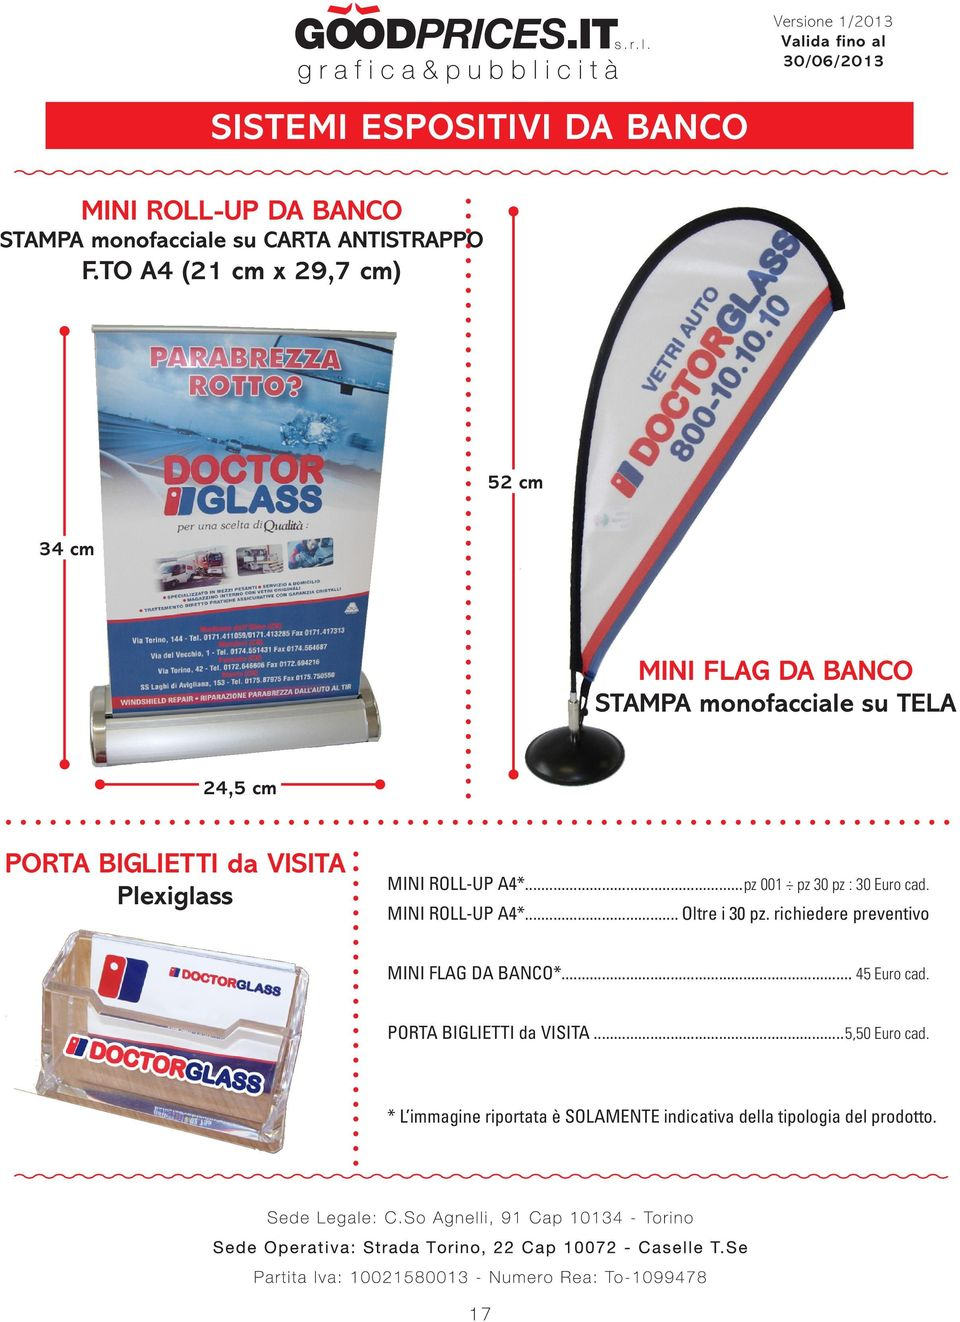 Plexiglass MINI ROLL-UP A4*...pz 001 pz 30 pz : 30 Euro cad. MINI ROLL-UP A4*... Oltre i 30 pz.